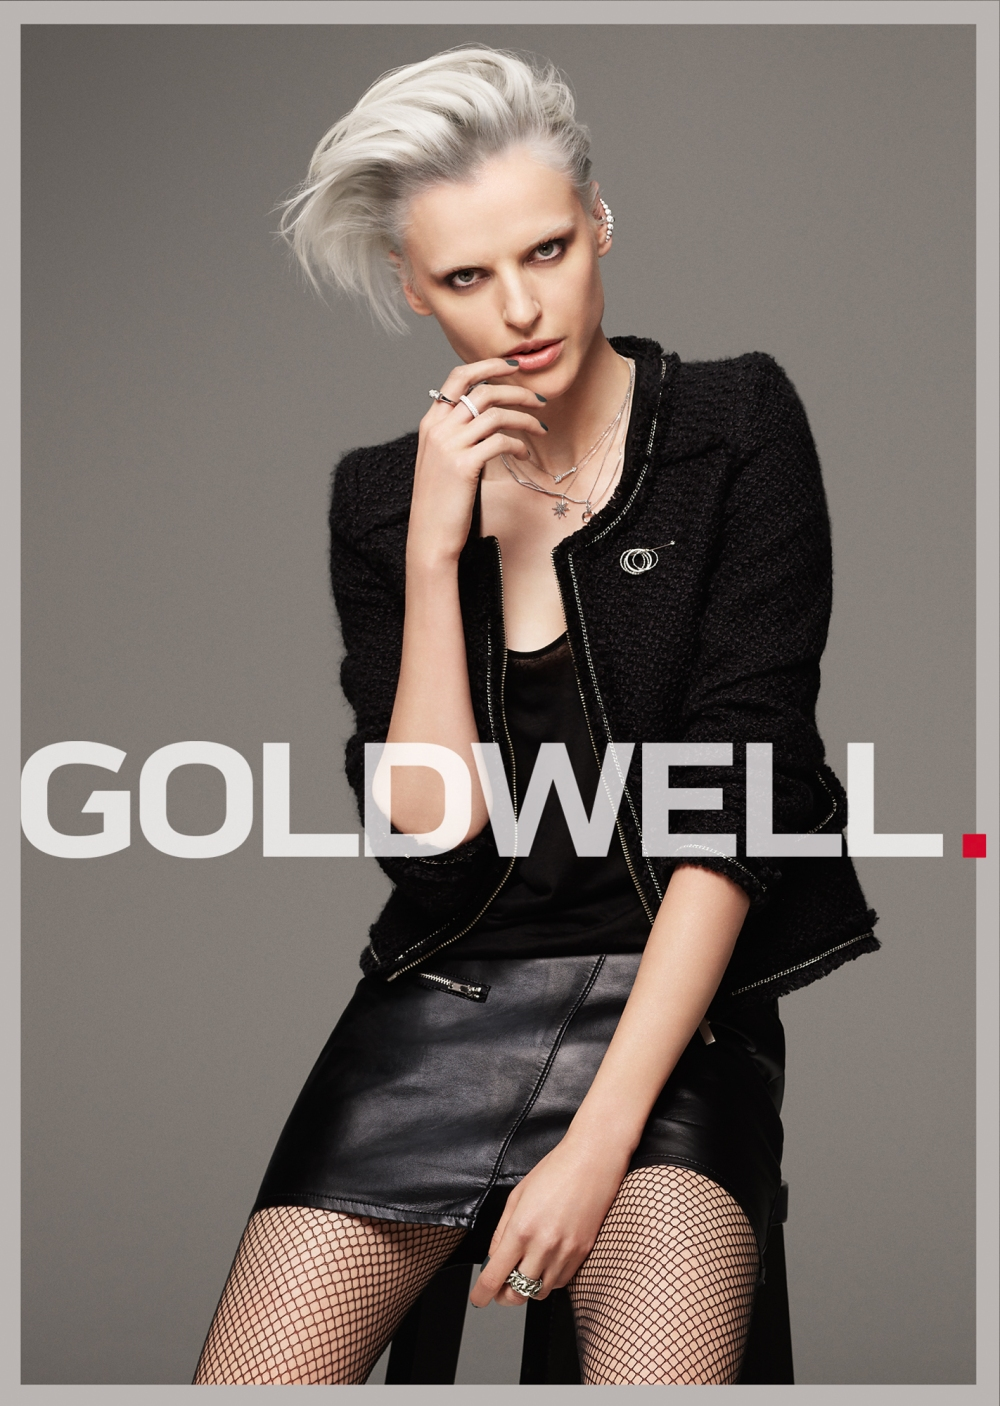 goldwell-by-ralph-mecke-1